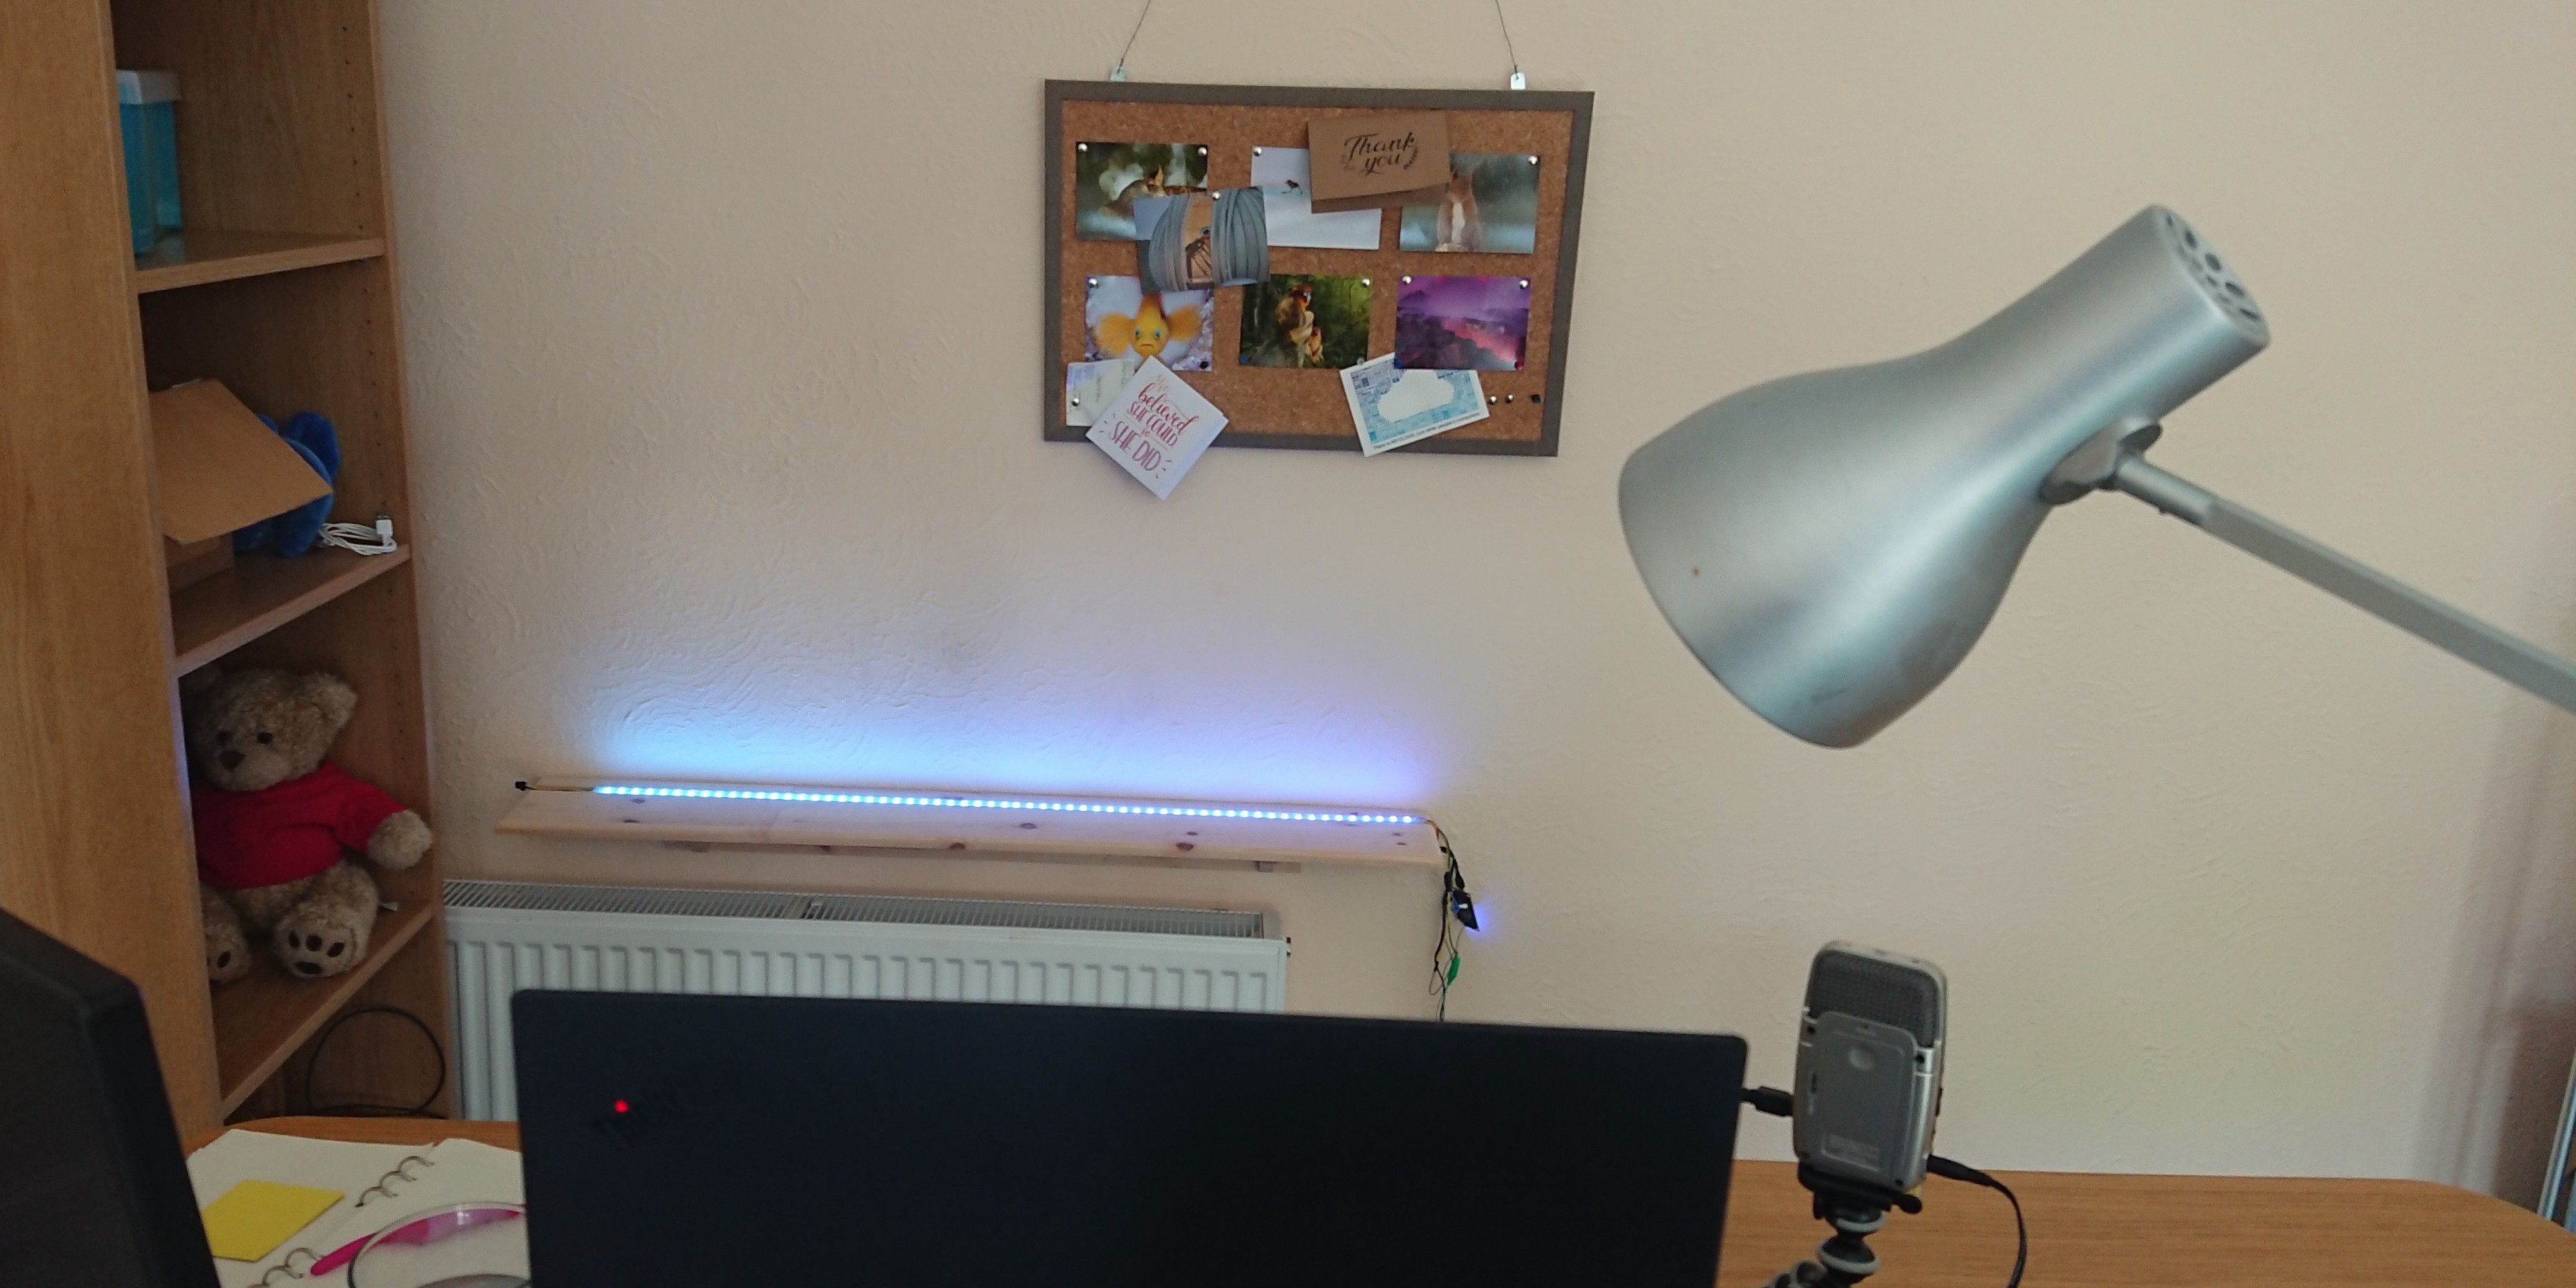 Webcam's eye view, showing top of laptop, pinboard and shelf behind desk